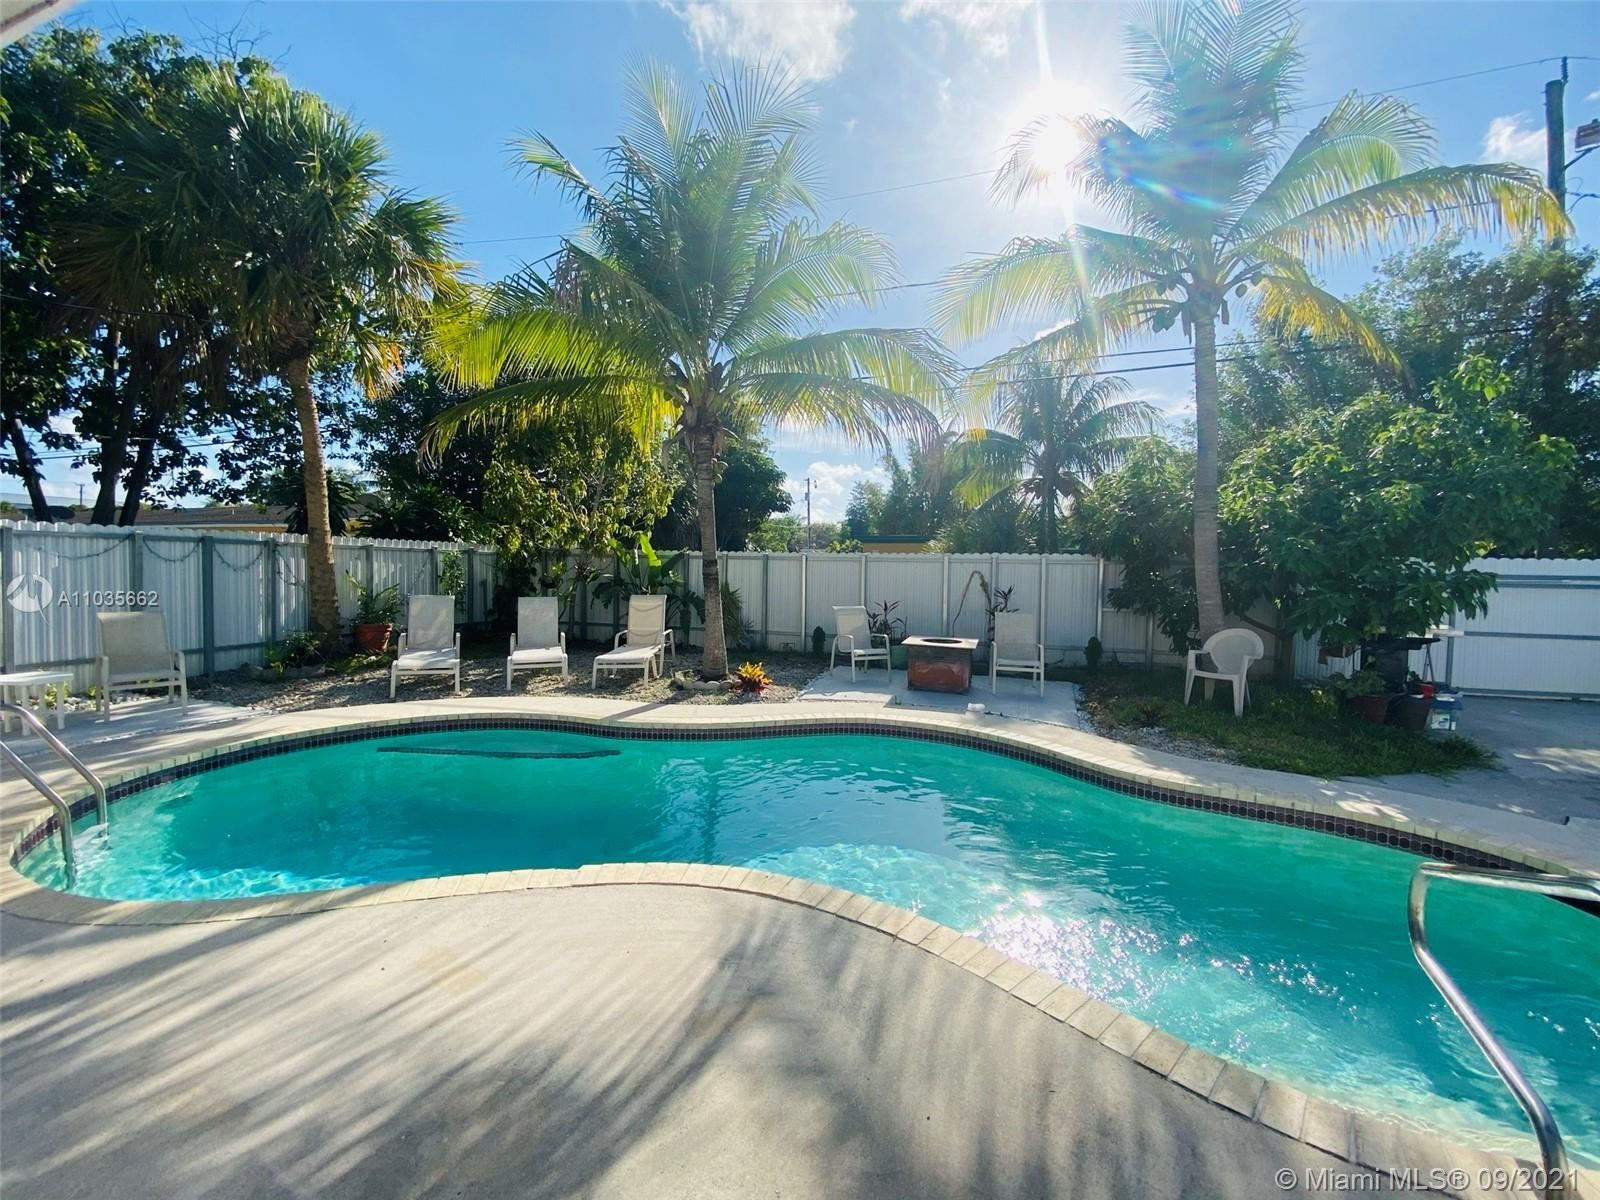 1506 S 19th Ave, Hollywood, FL 33020 - #: A11035662